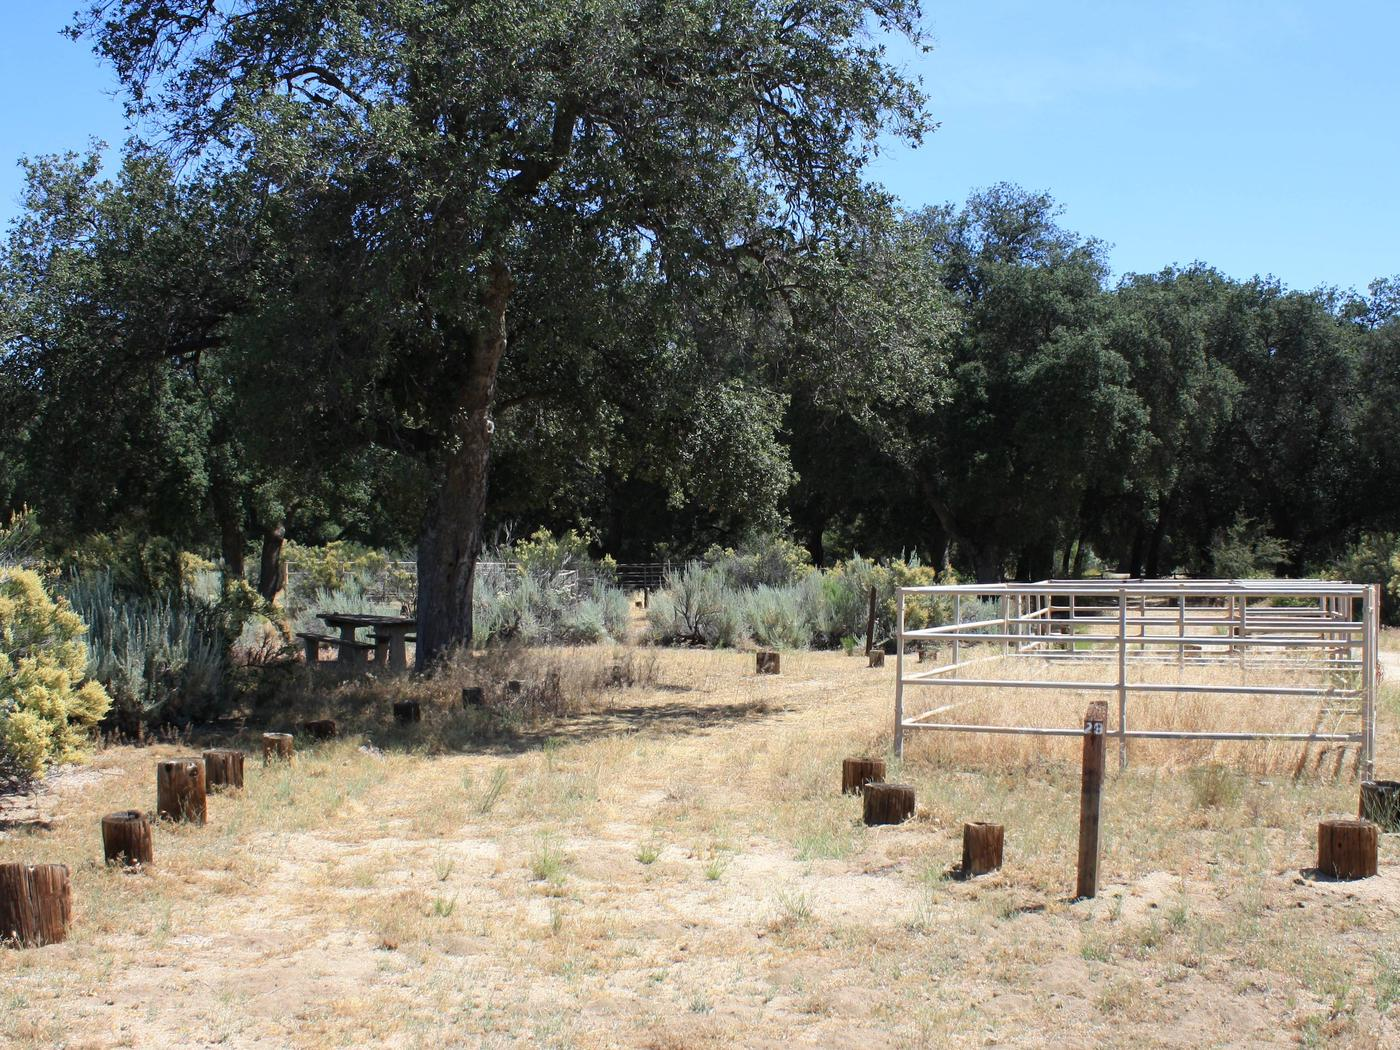 Boulder Oaks CampgroundOne loop of the campground is designed to accommodate equestrian users with corrals and trailer parking.